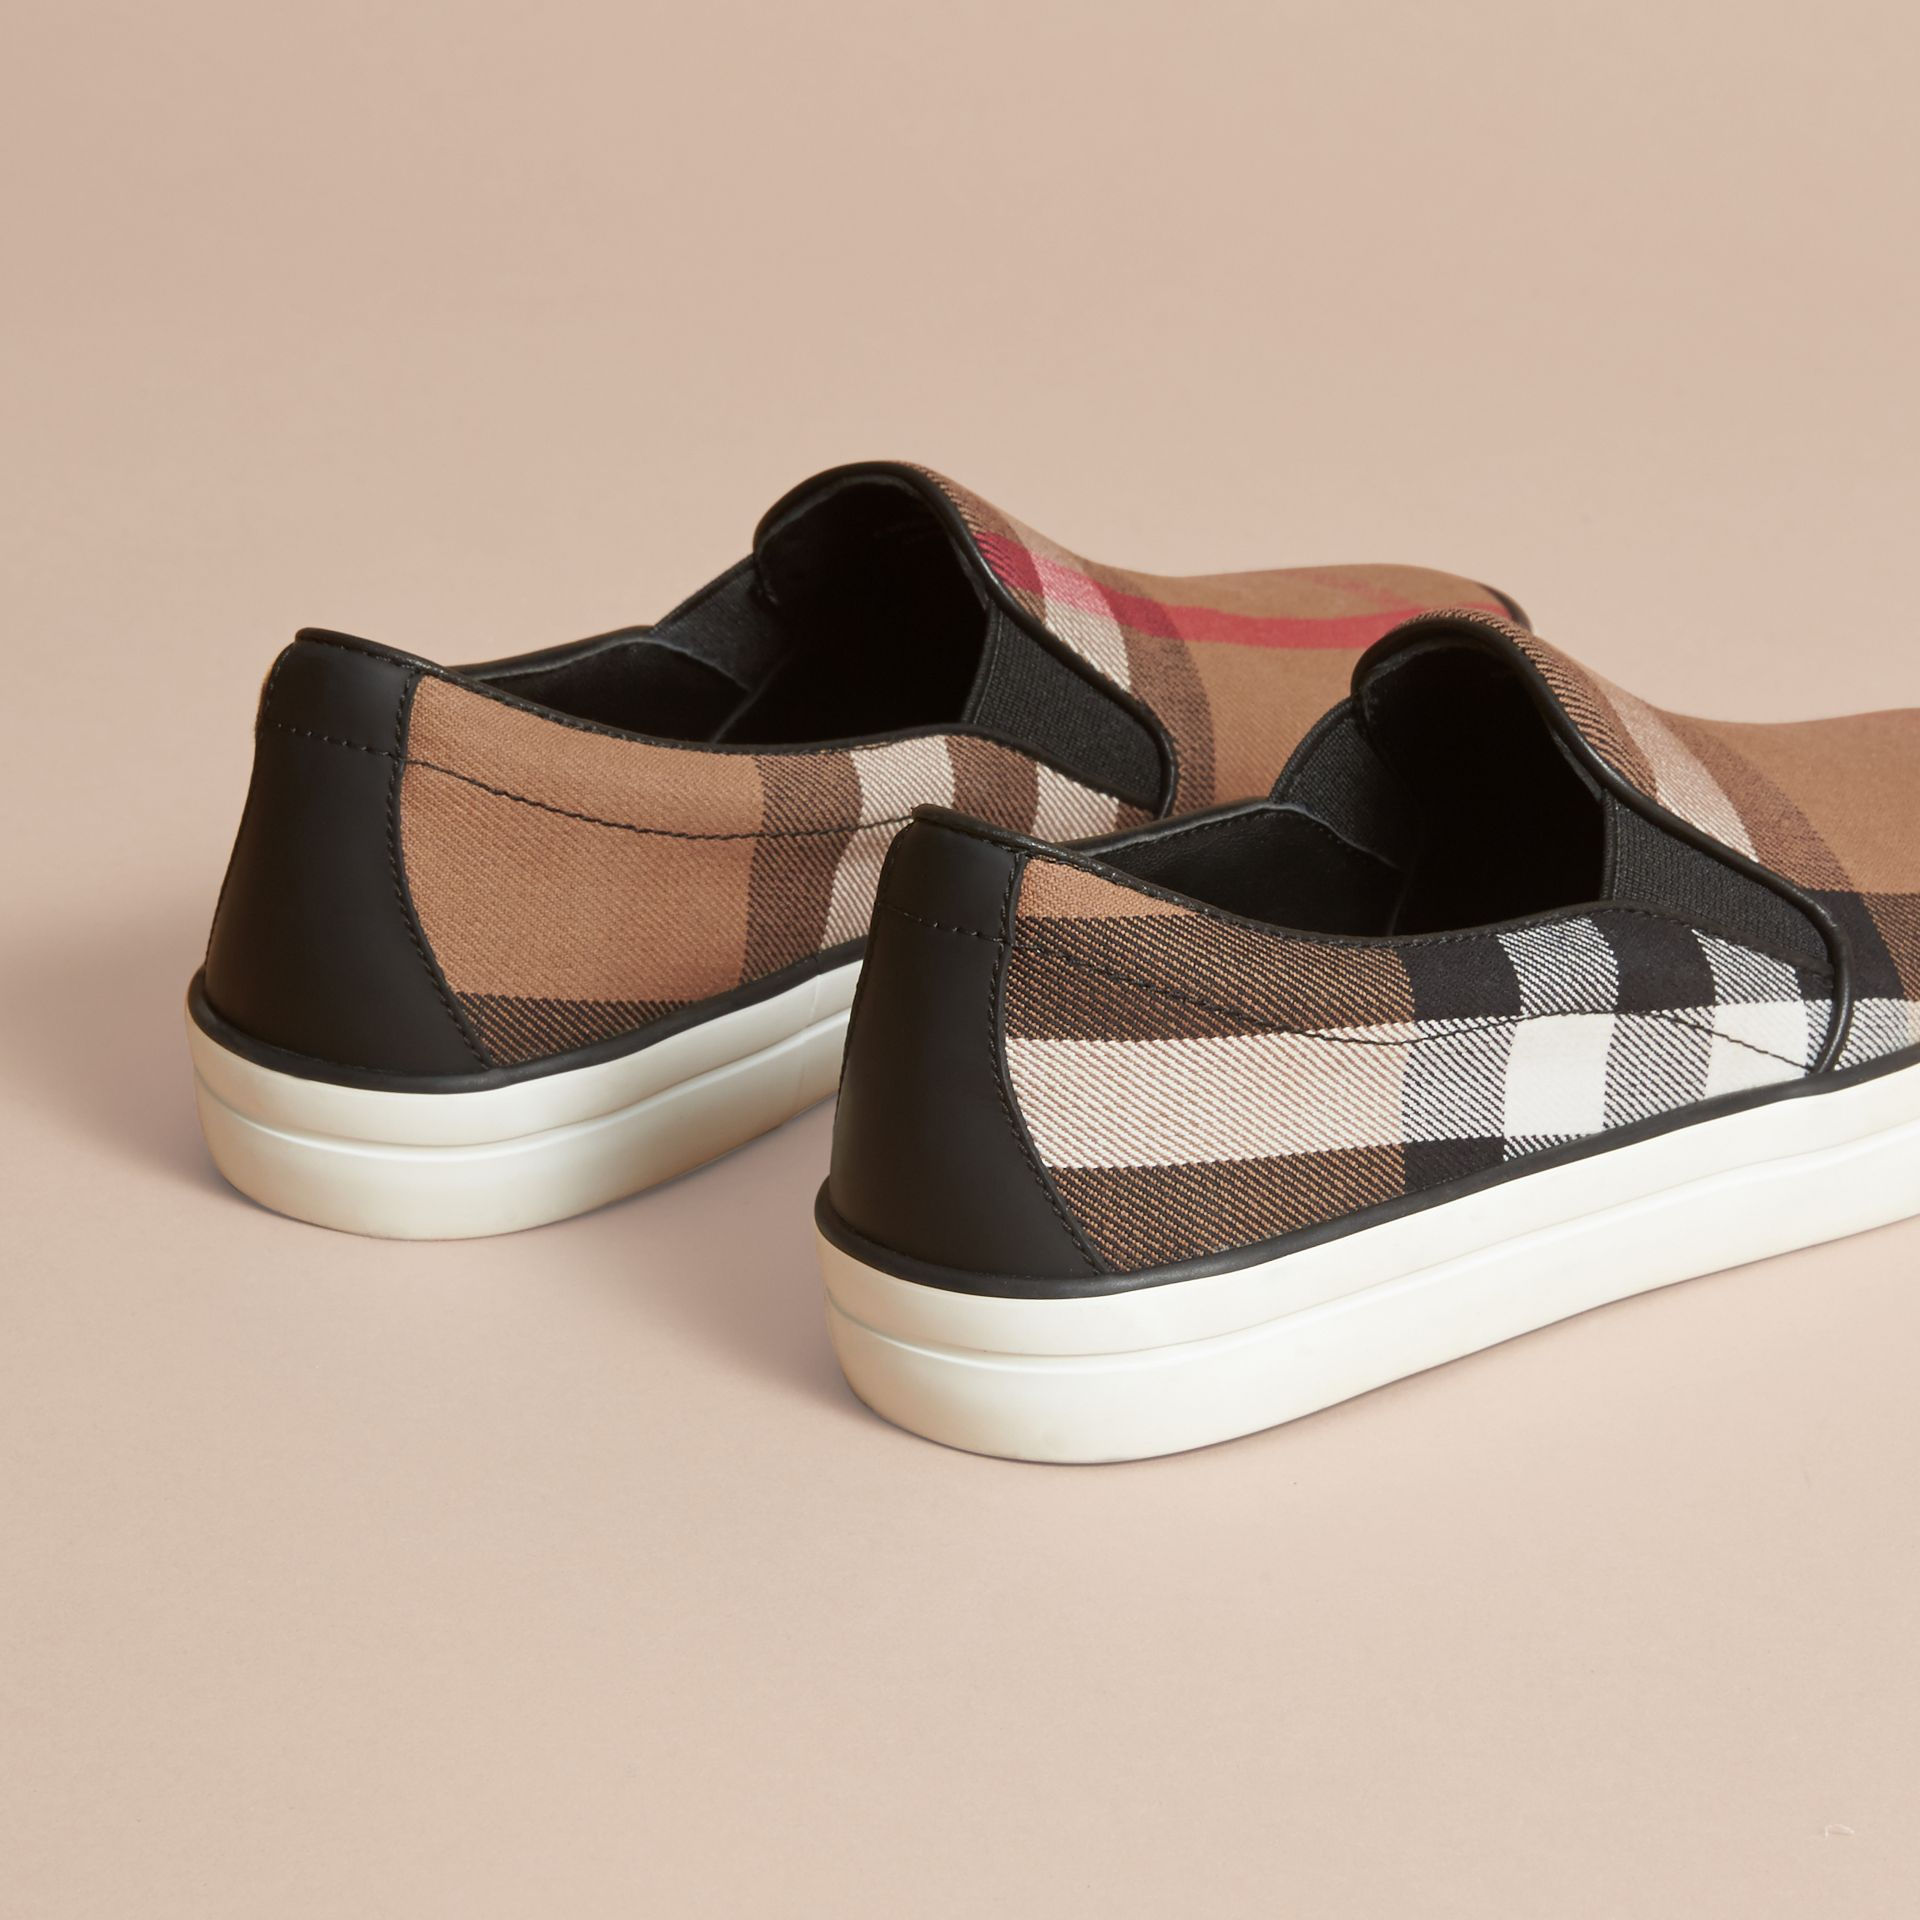 House Check Cotton and Leather Slip-on Trainers in Classic - Women | Burberry Canada - gallery image 4